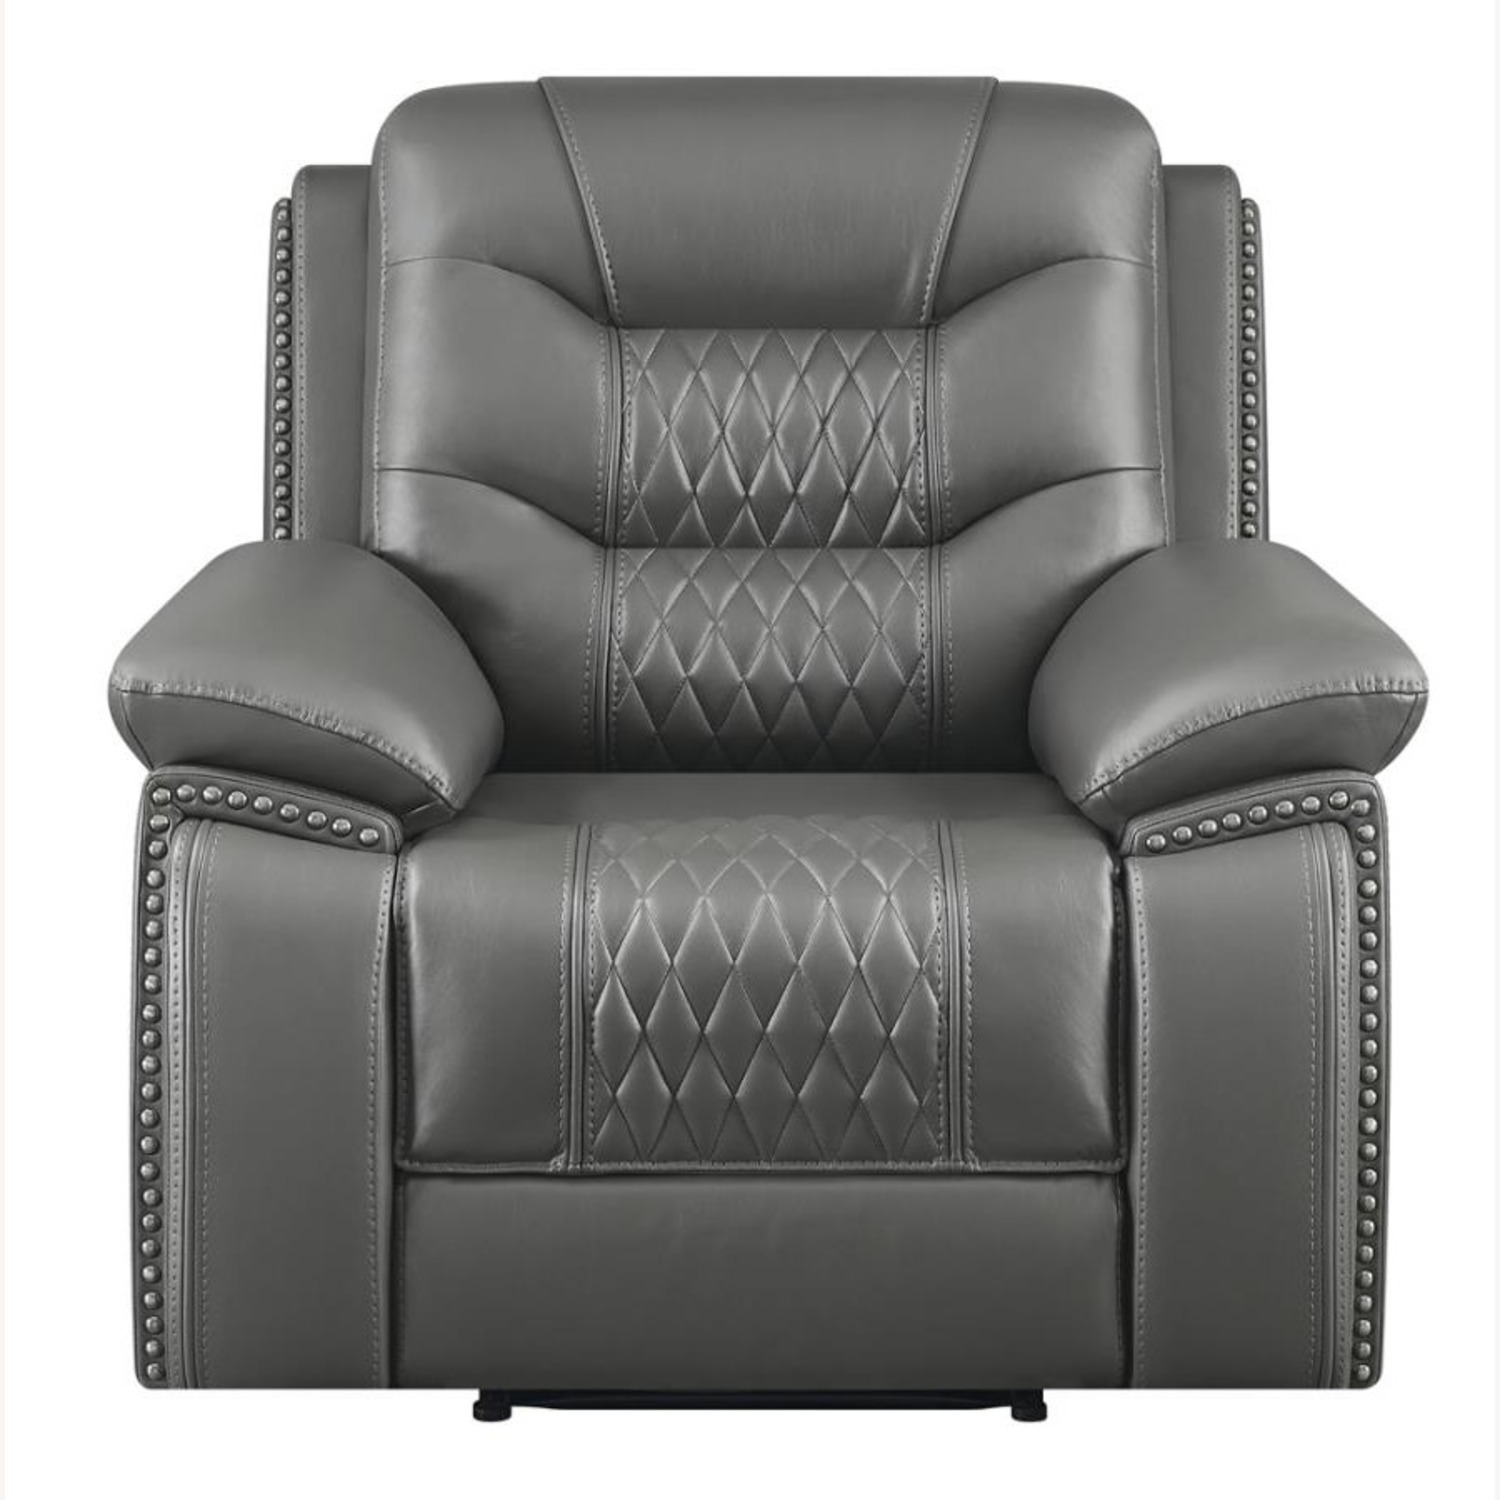 Recliner In Charcoal Performance Leatherette - image-2